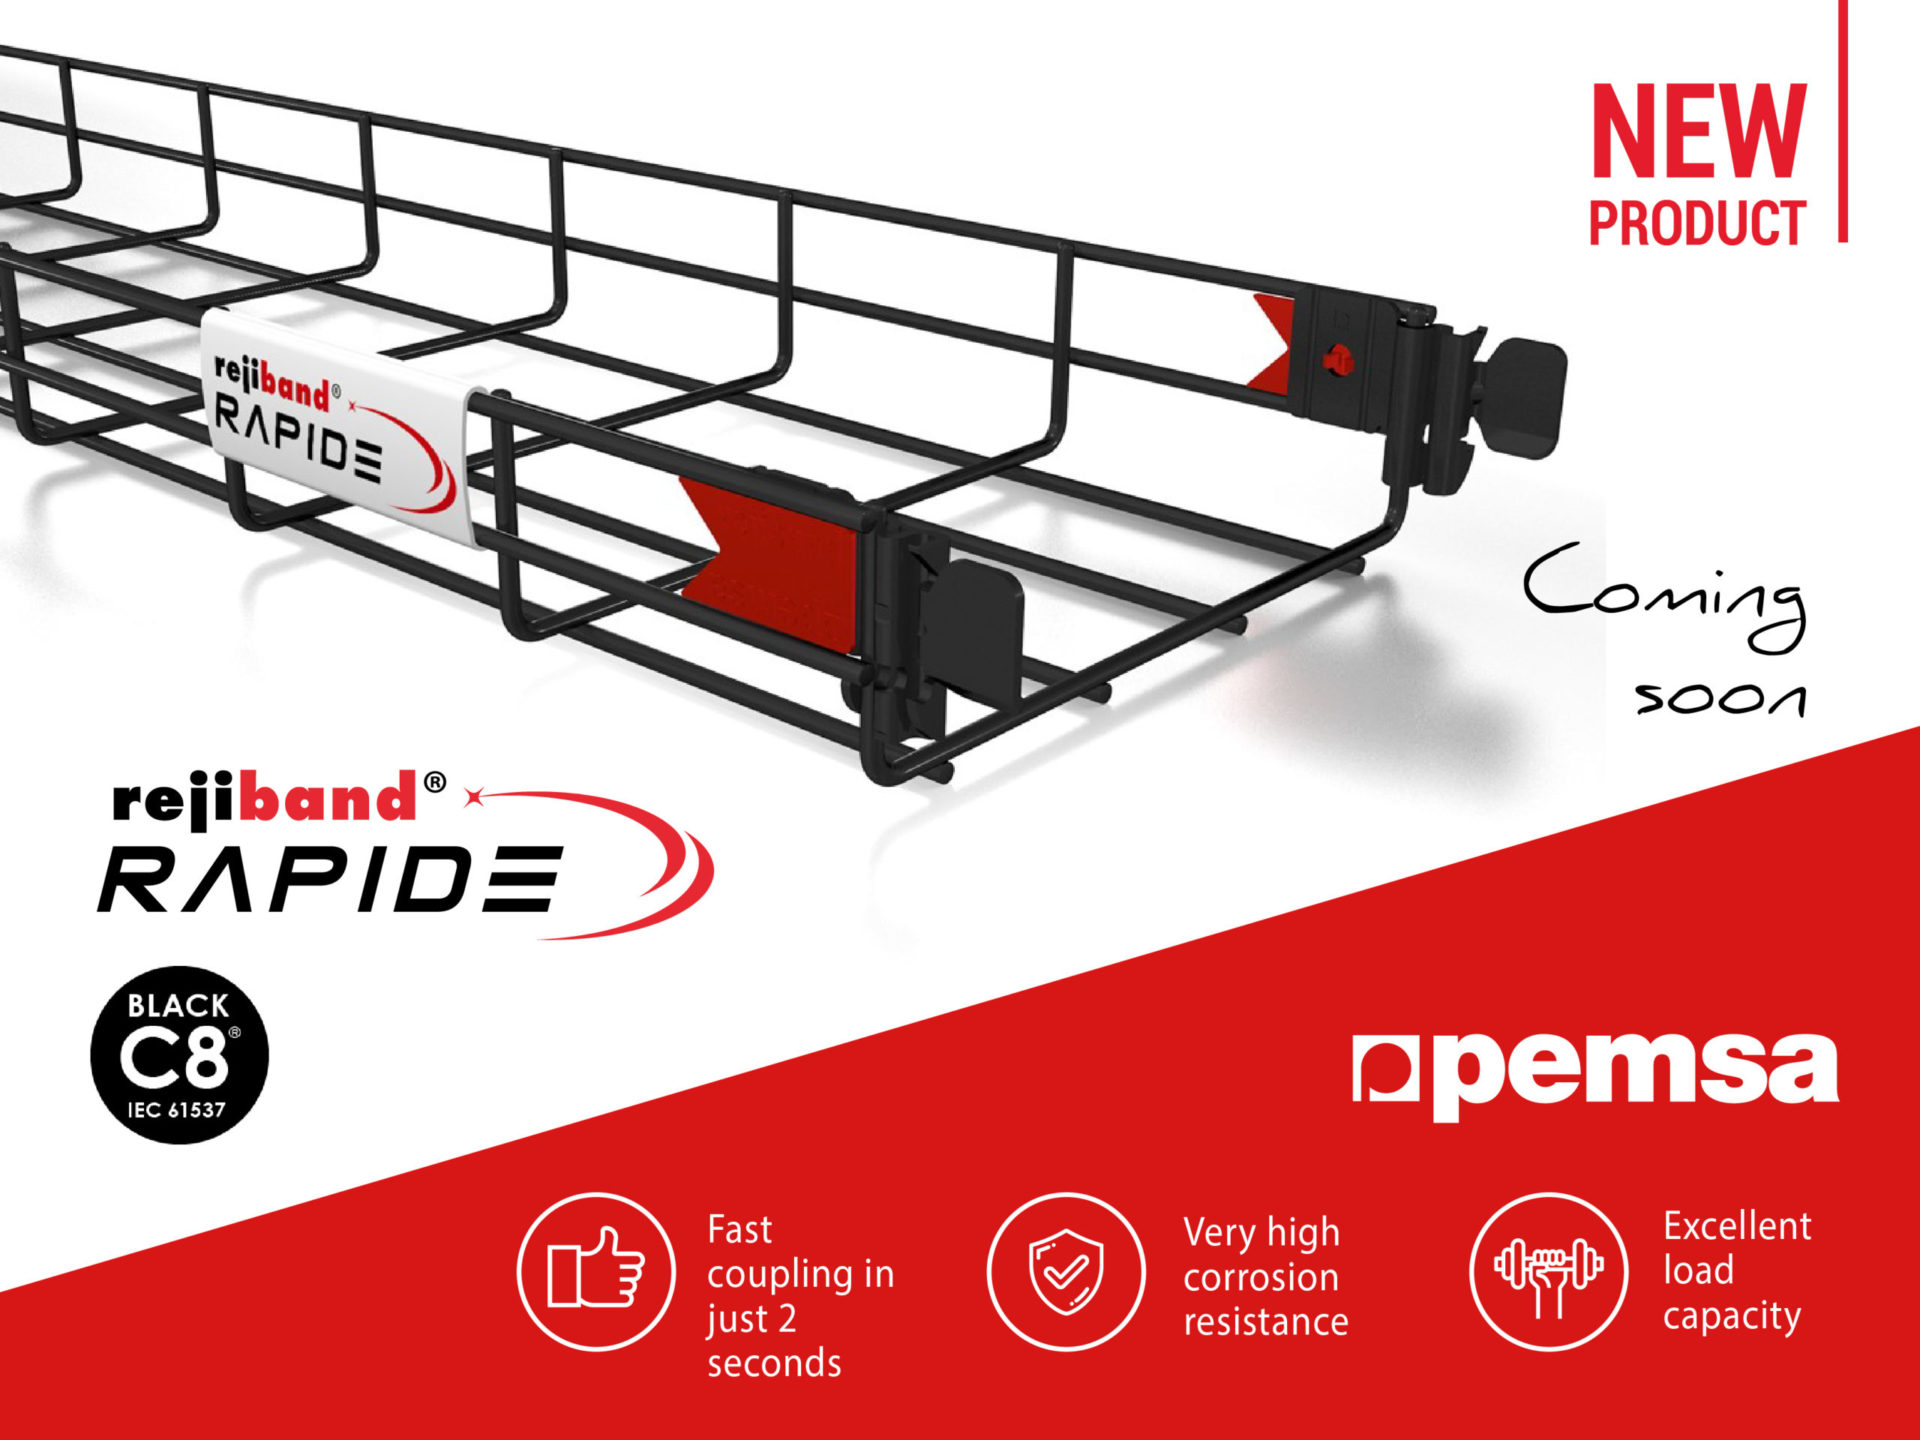 Pemsa Launches the Rejiband Rapide Black C8